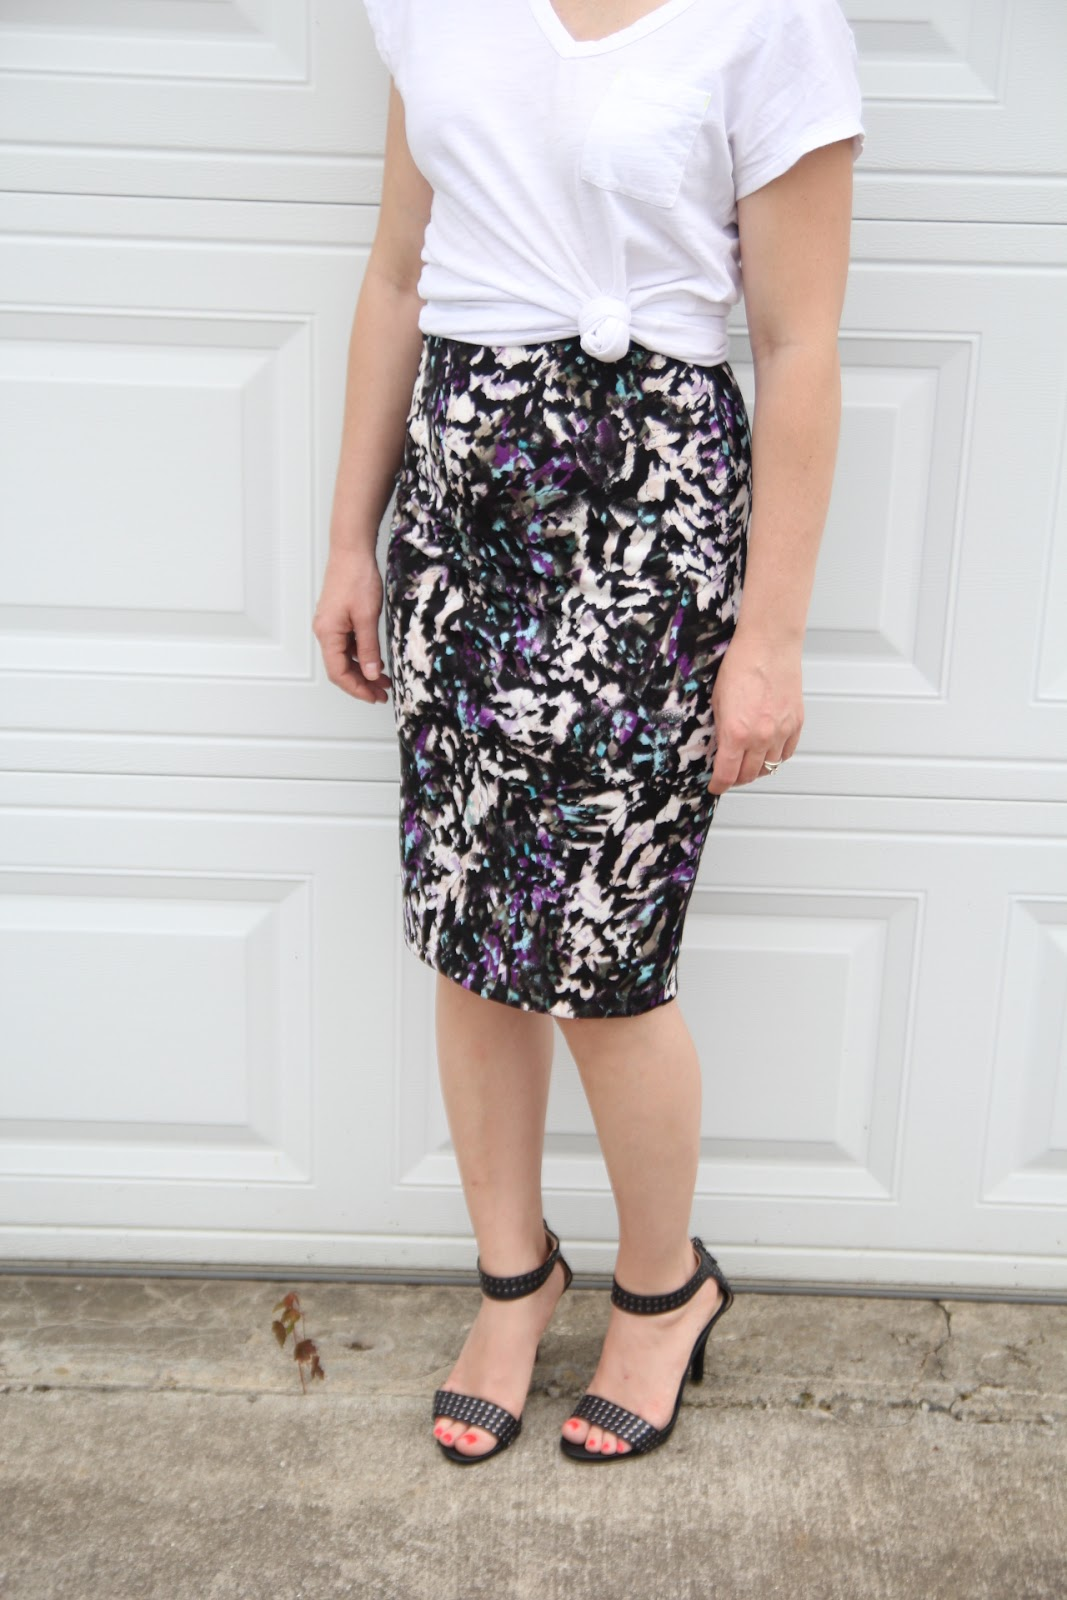 Thrift And Shout: Cute Outfit Of The Day: Pencil Skirt